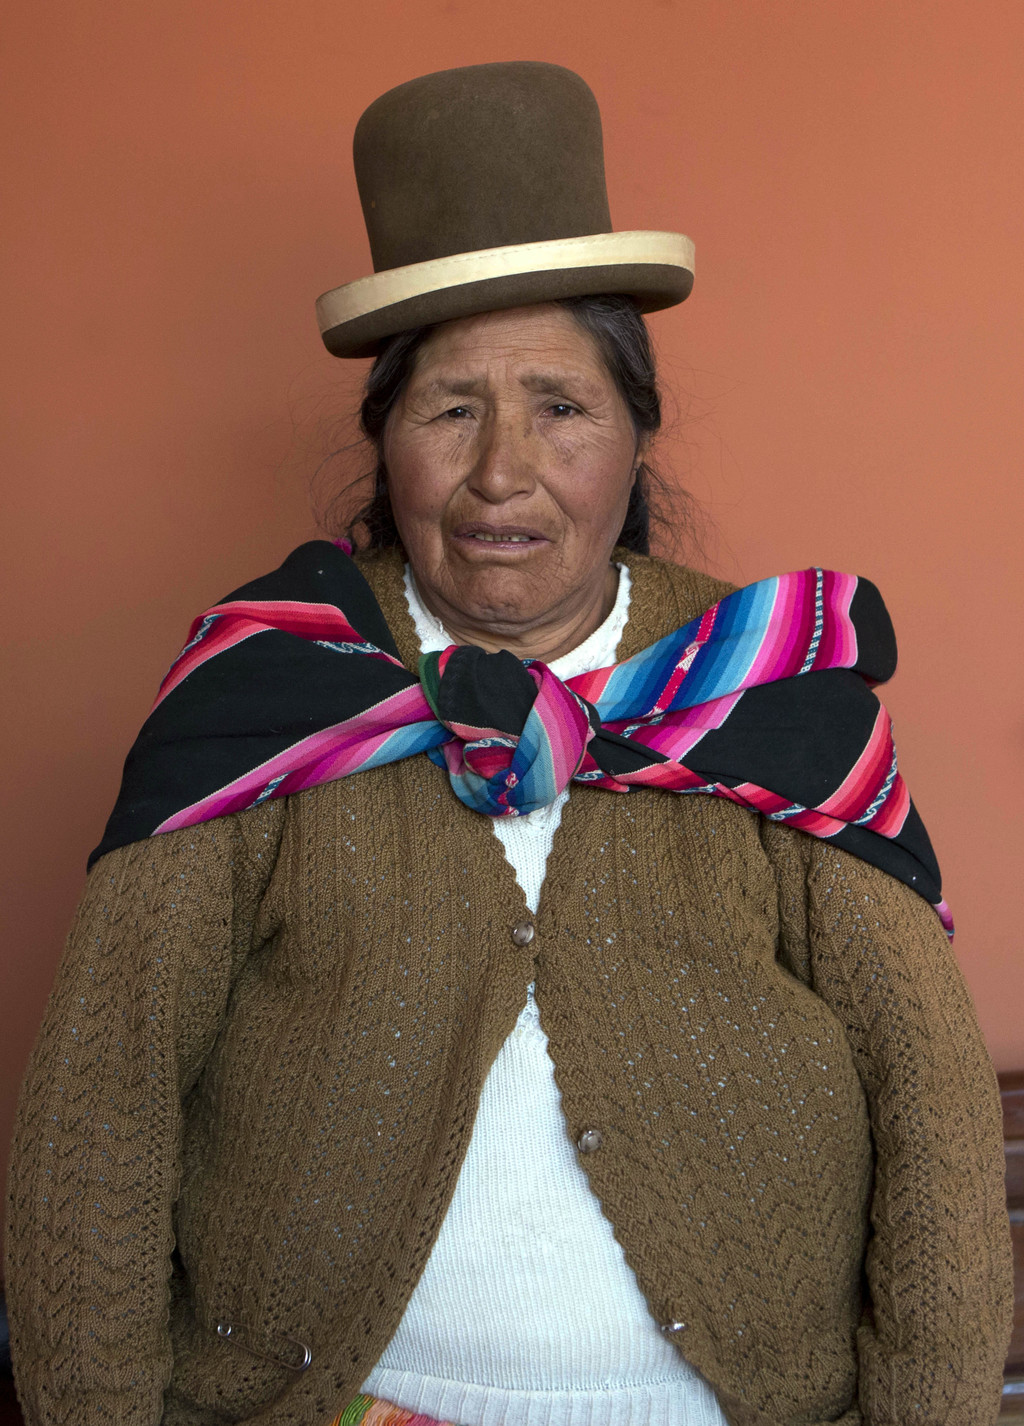 In this May 15, 2017 photo, midwife Ruperta Tola, 67, poses for a portrait at the Nila Heredia hospital in Patacamaya, Bolivia. Tola says she's been a...